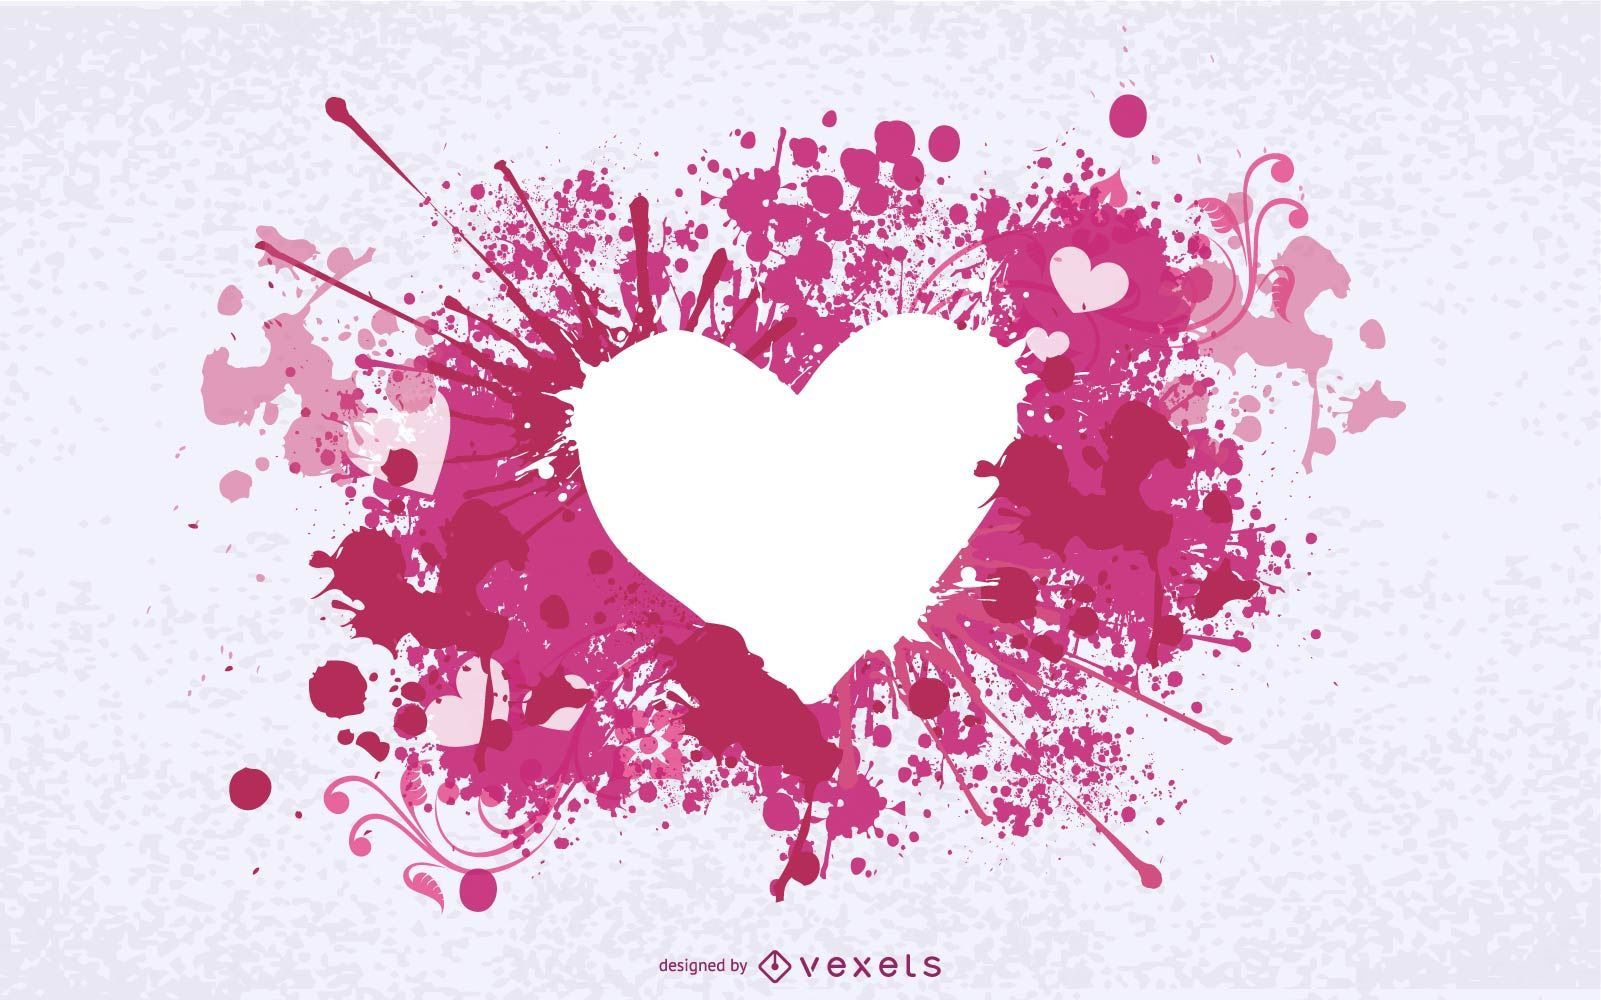 Grungy Ink Splashed Heart